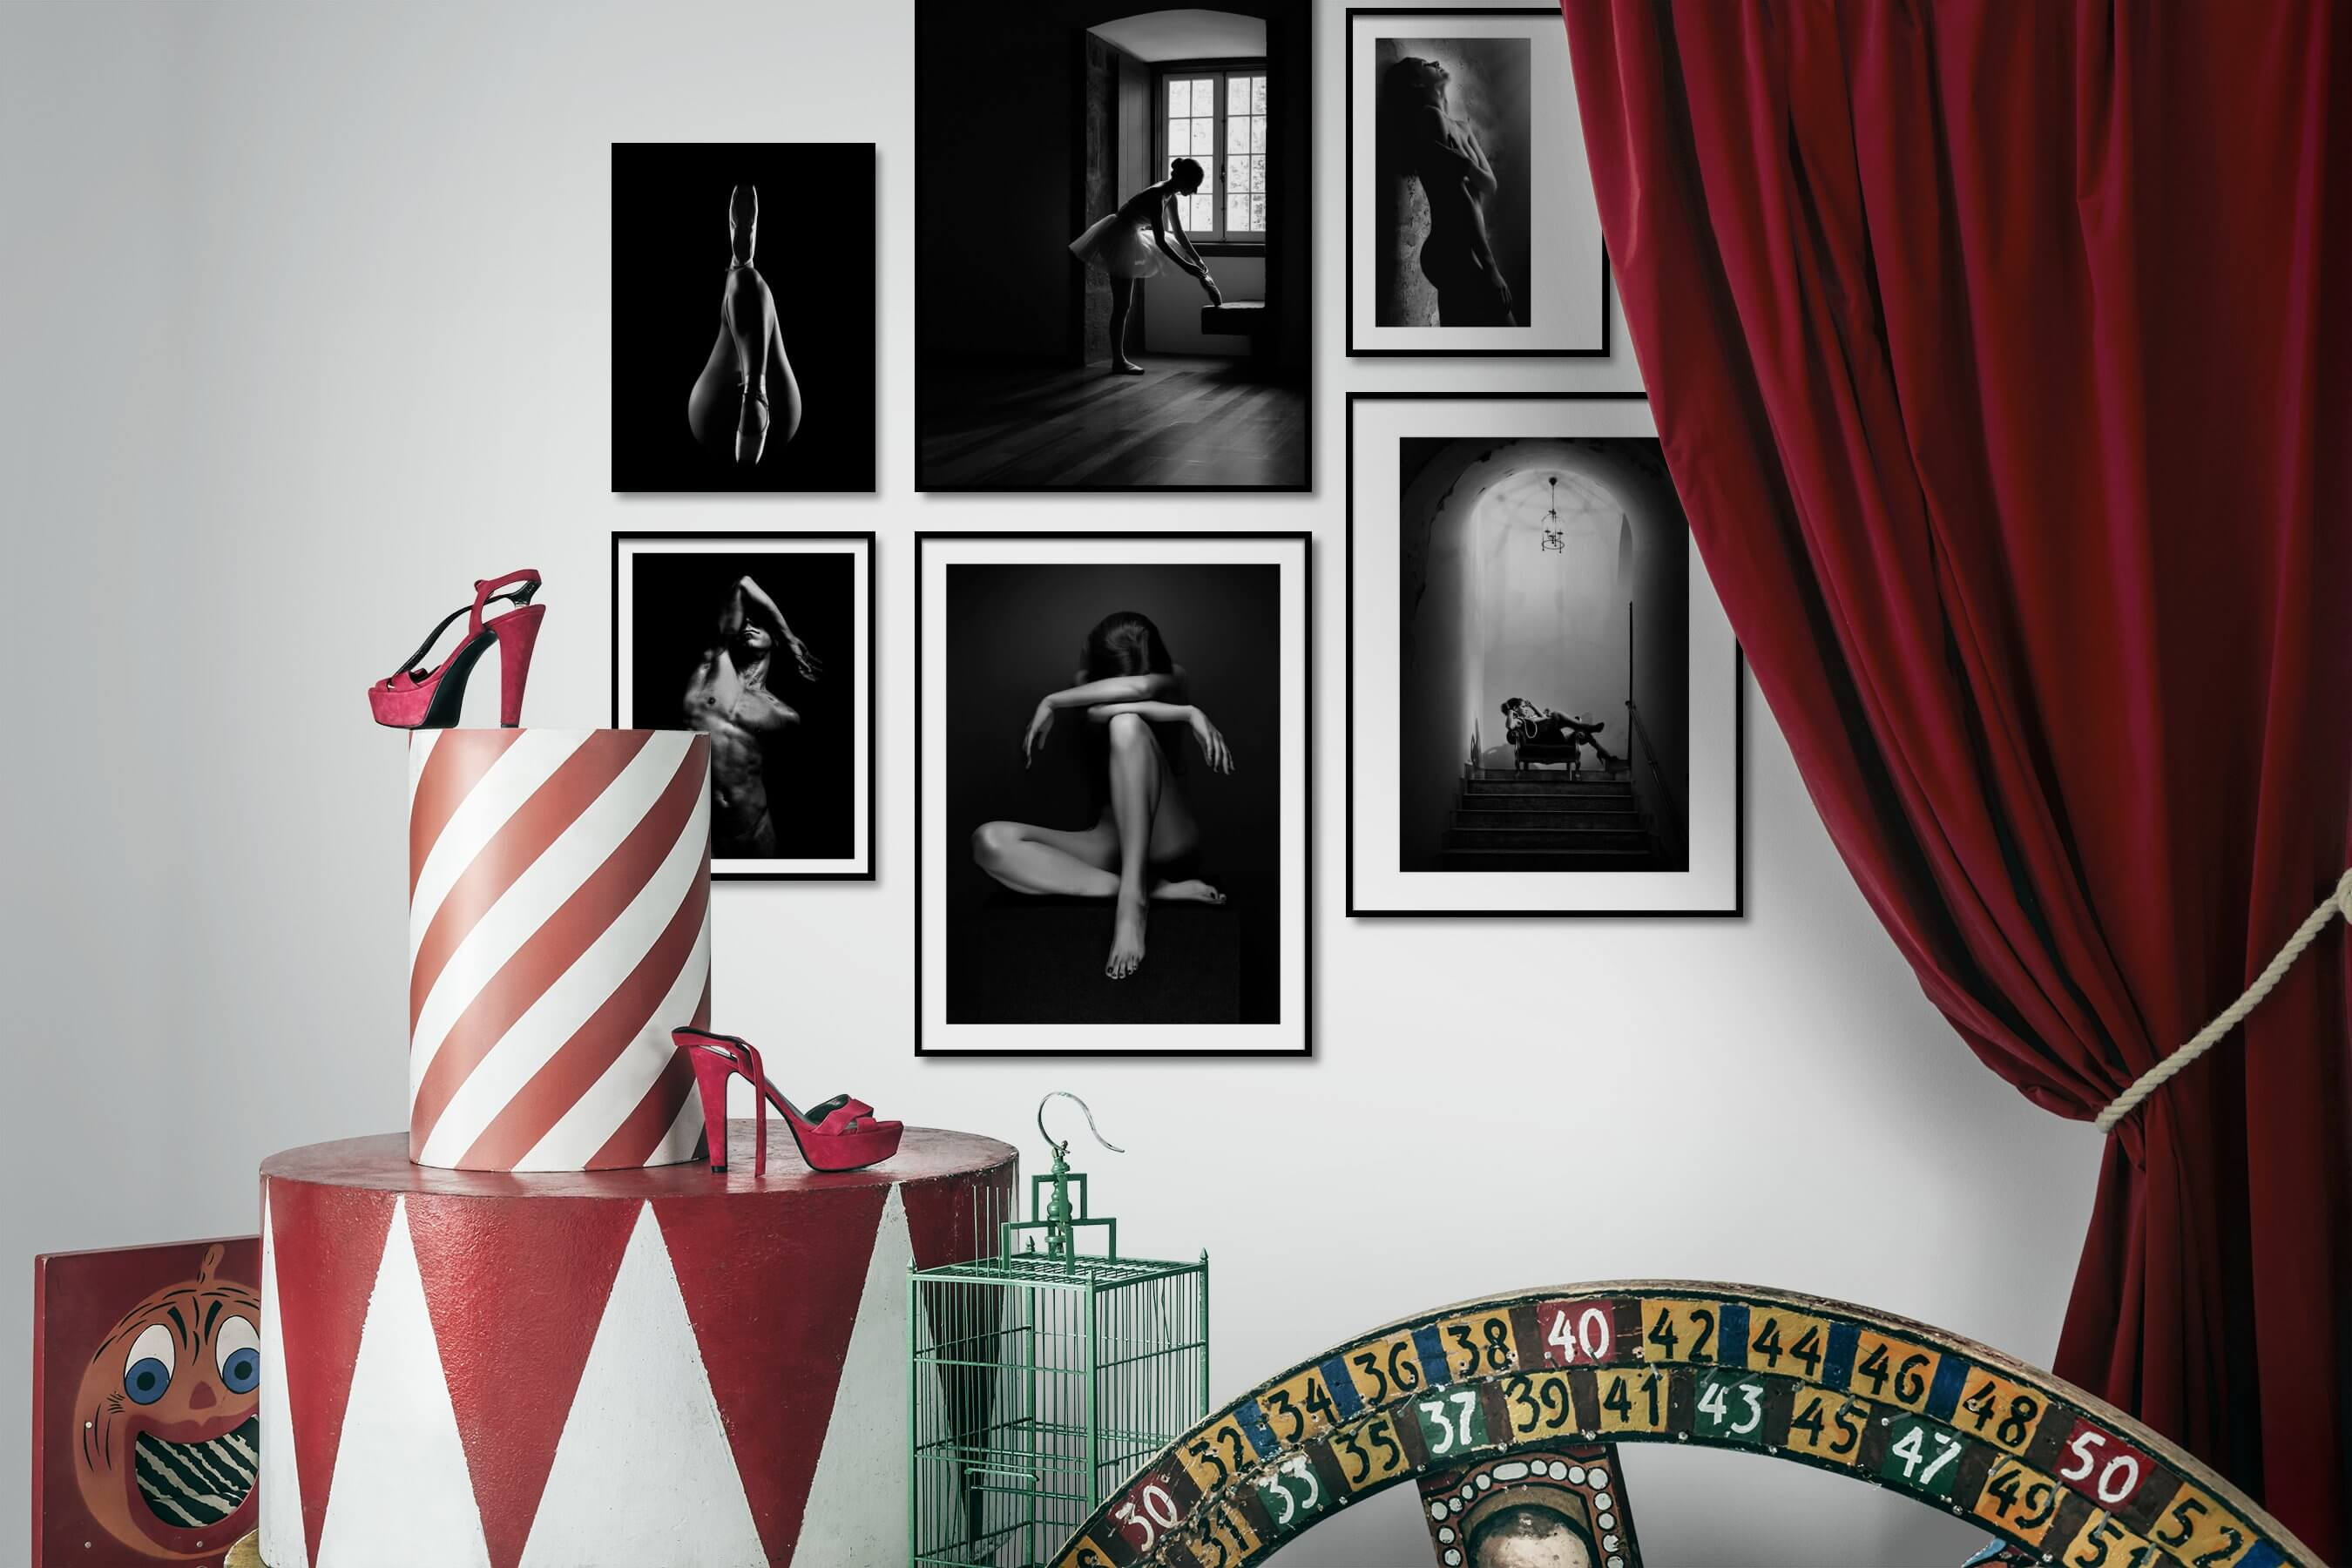 Gallery wall idea with six framed pictures arranged on a wall depicting Fashion & Beauty, Black & White, Dark Tones, For the Minimalist, and Vintage